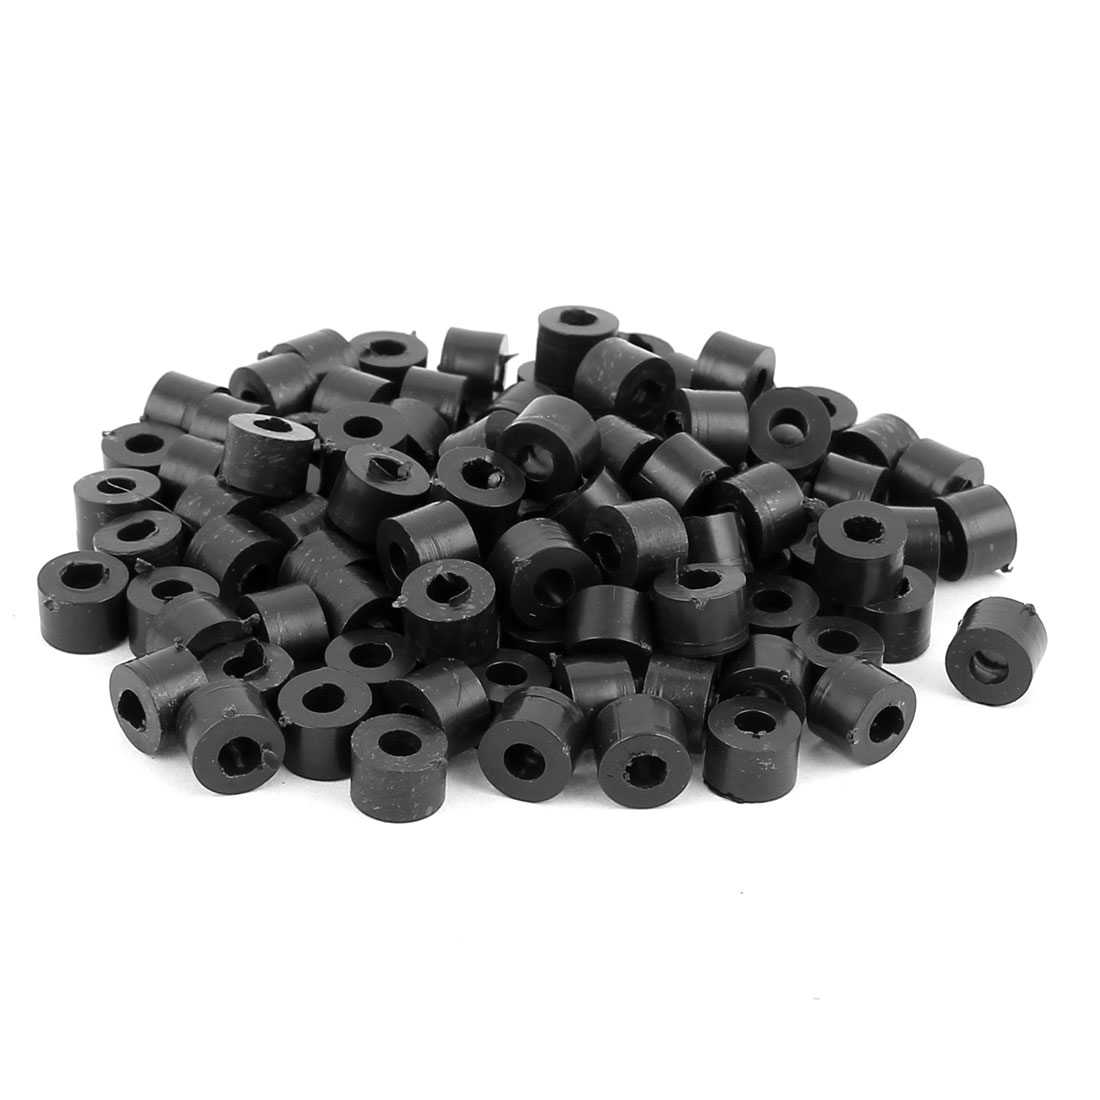 100 Pcs ABS Cylinder LED Spacer Holder Support M3 x 5mm Black